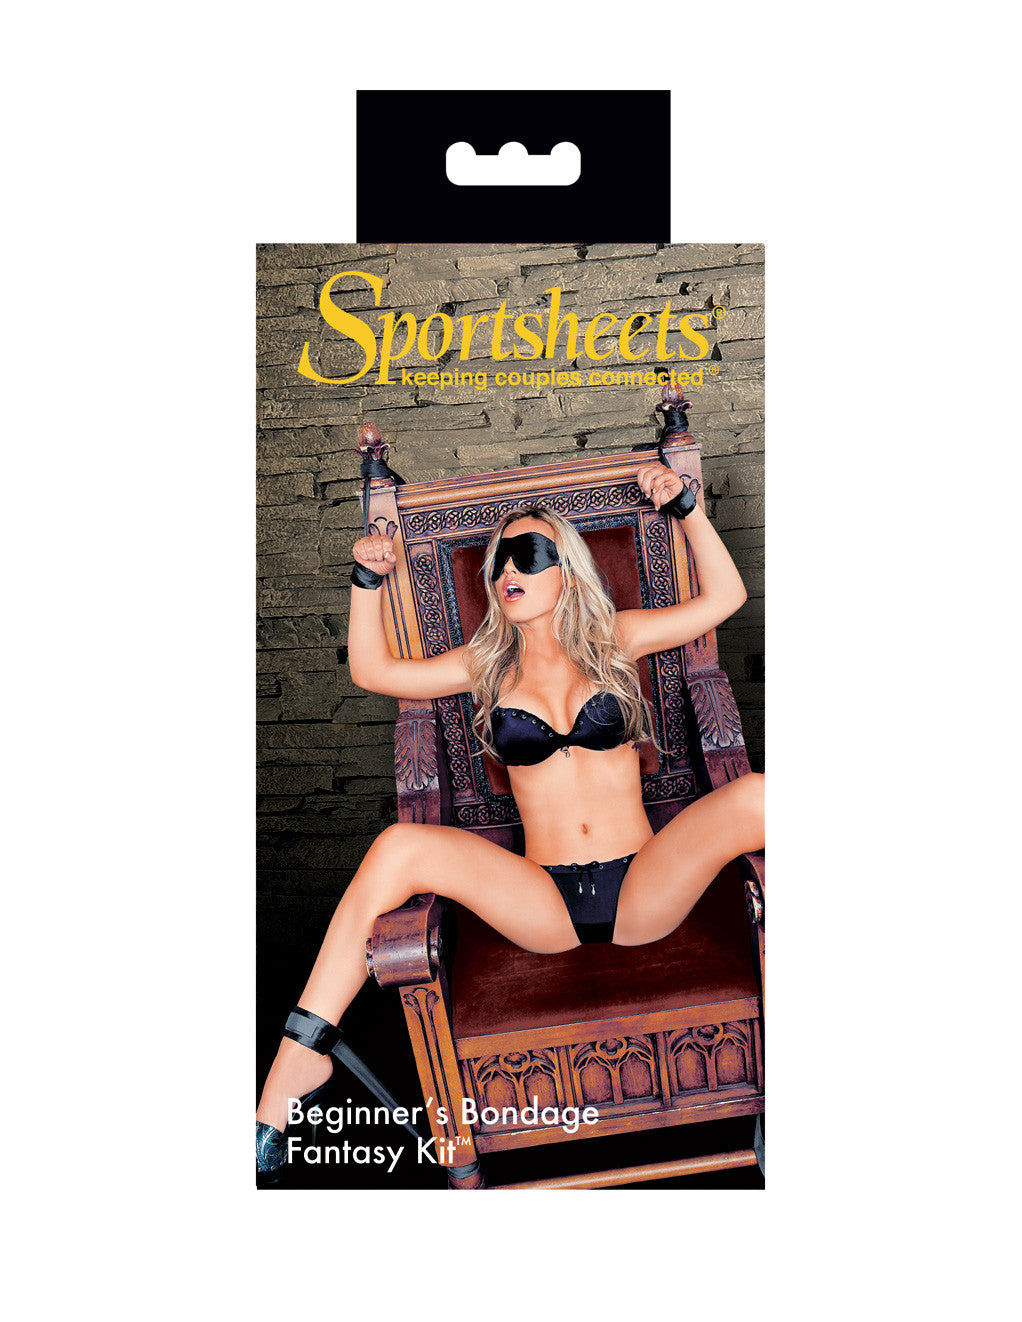 Sportsheets Beginner's Bondage Fantasy Kit Package